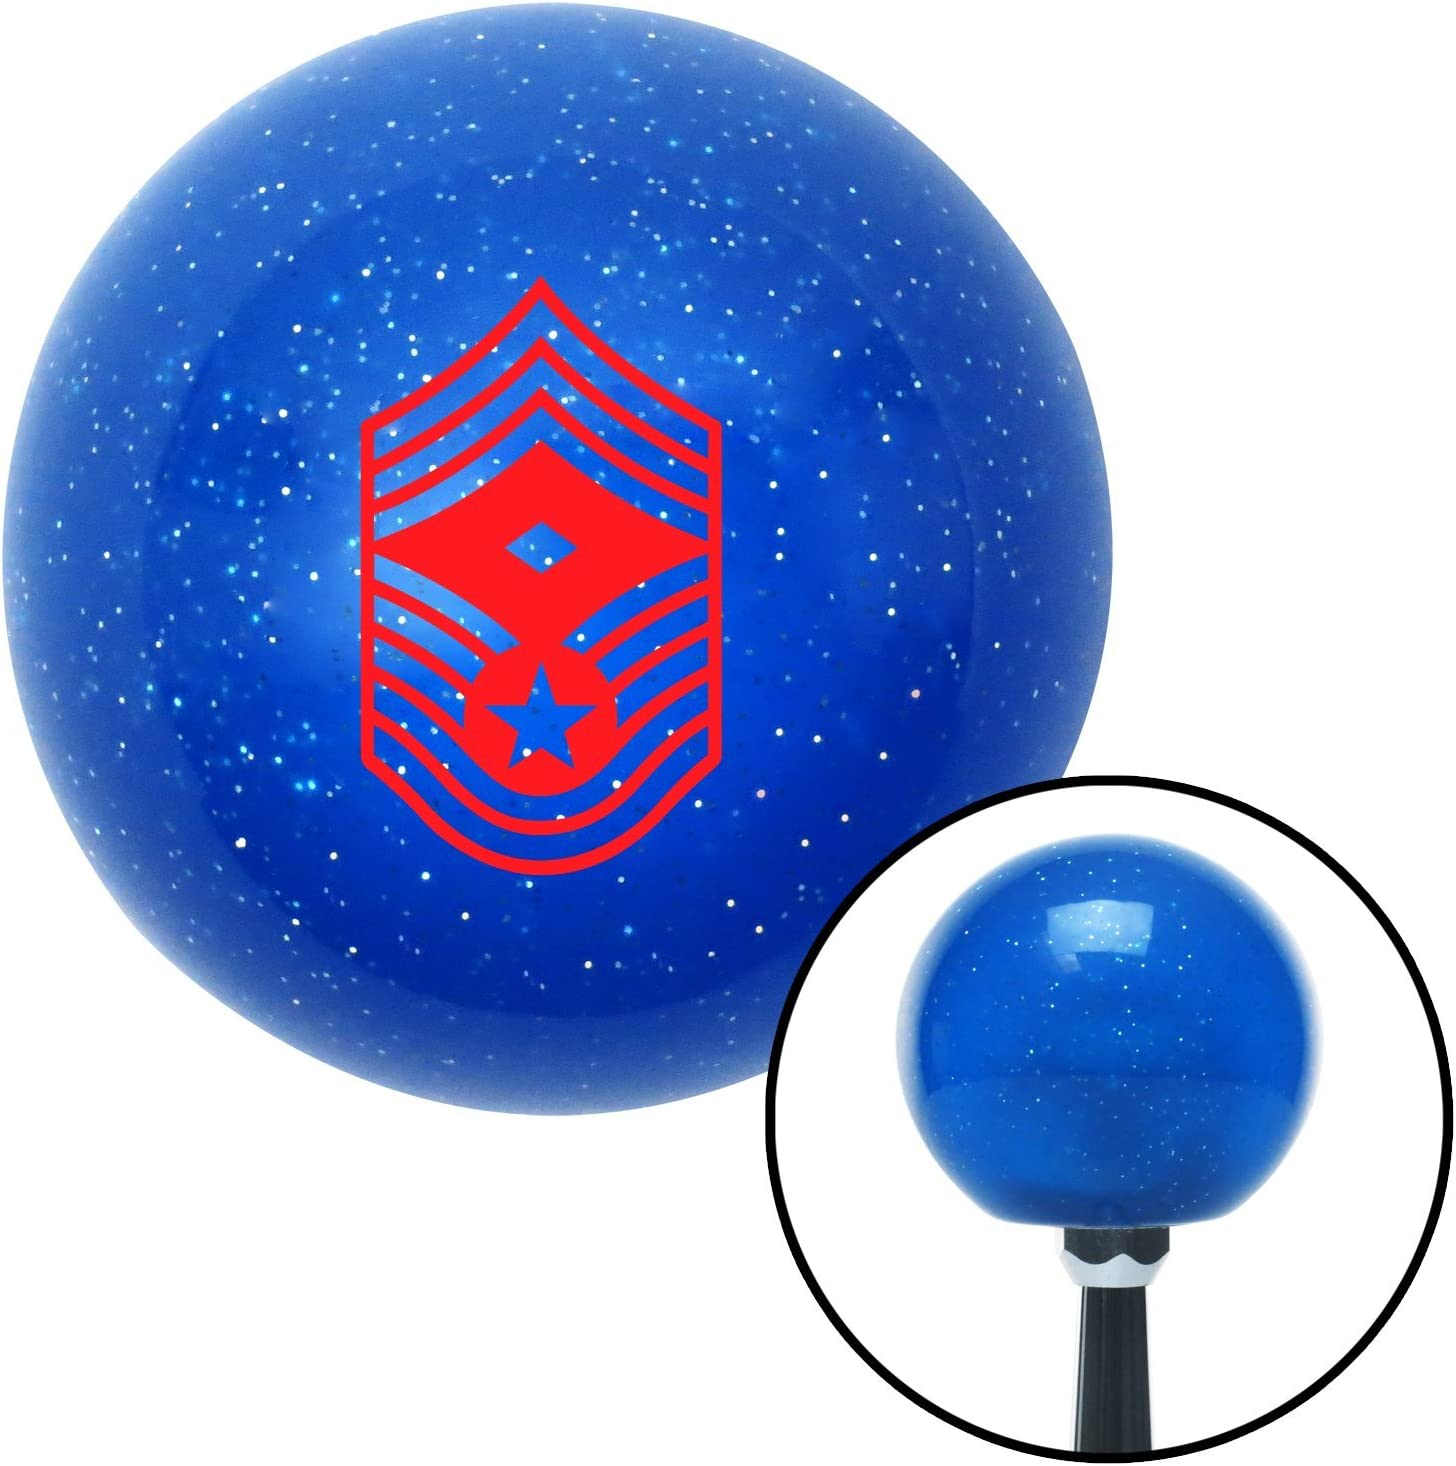 Red Chief Master Sergeant First Sergeant American Shifter 24529 Blue Metal Flake Shift Knob